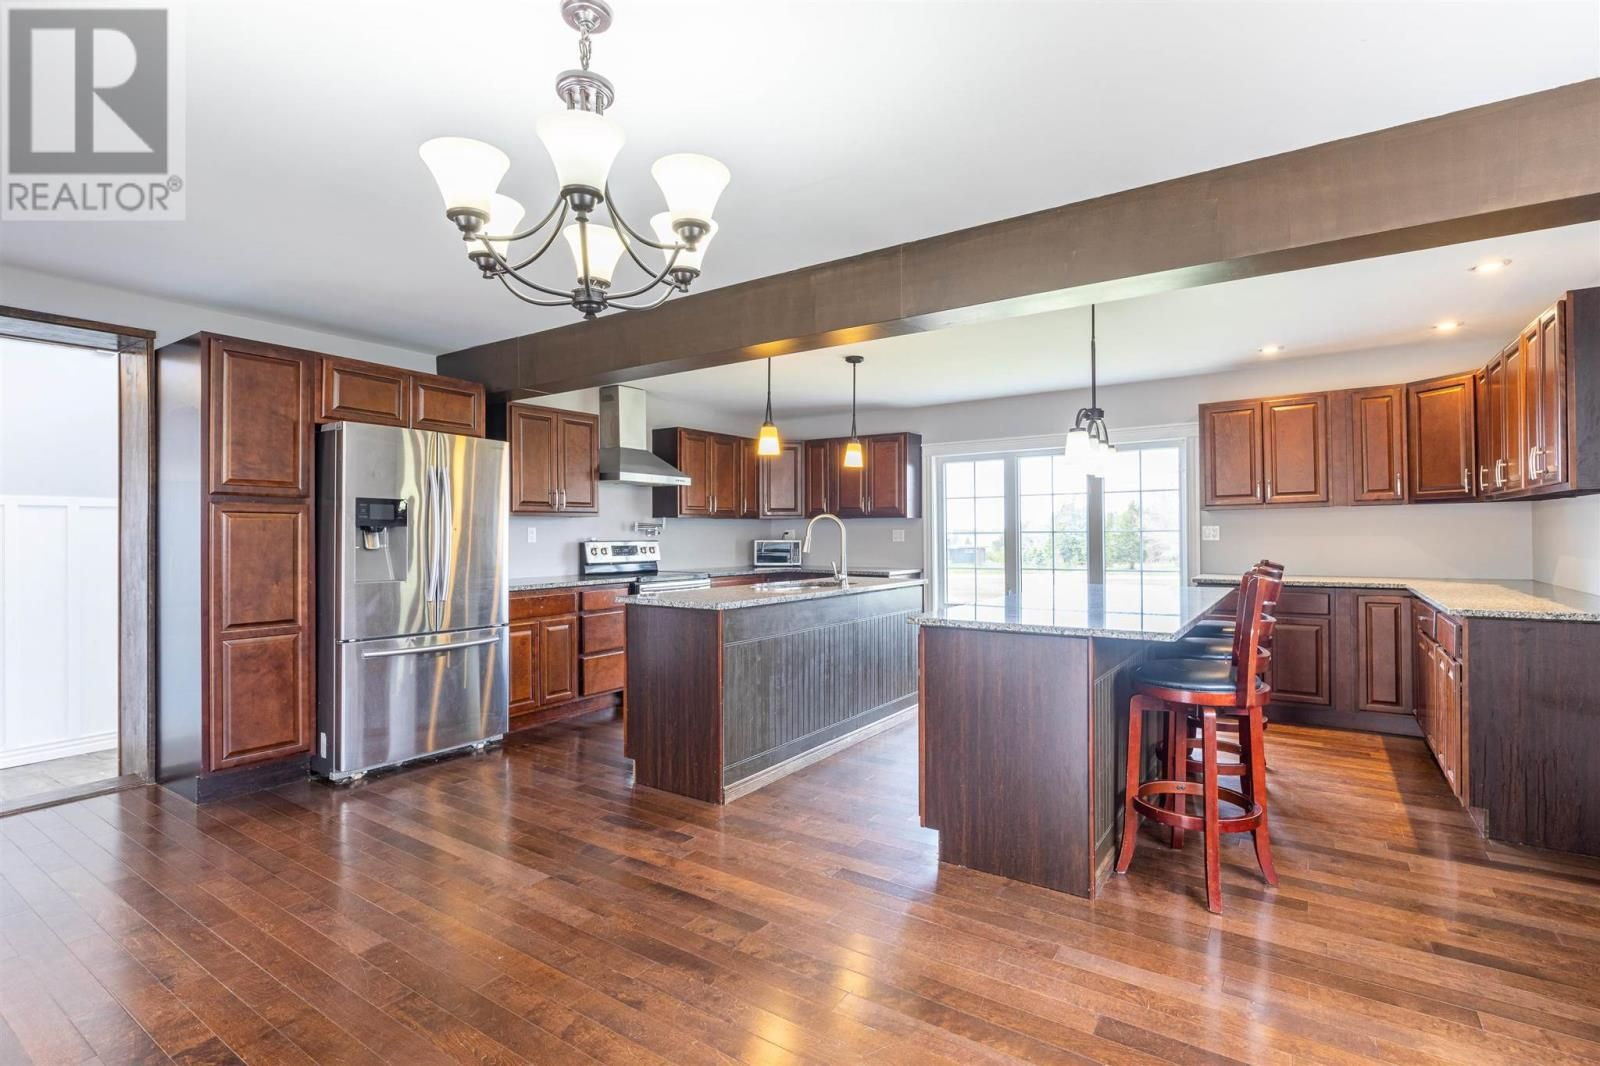 Photo 9: Photos: 5 Cherry Lane in Stratford: House for sale : MLS®# 202119303